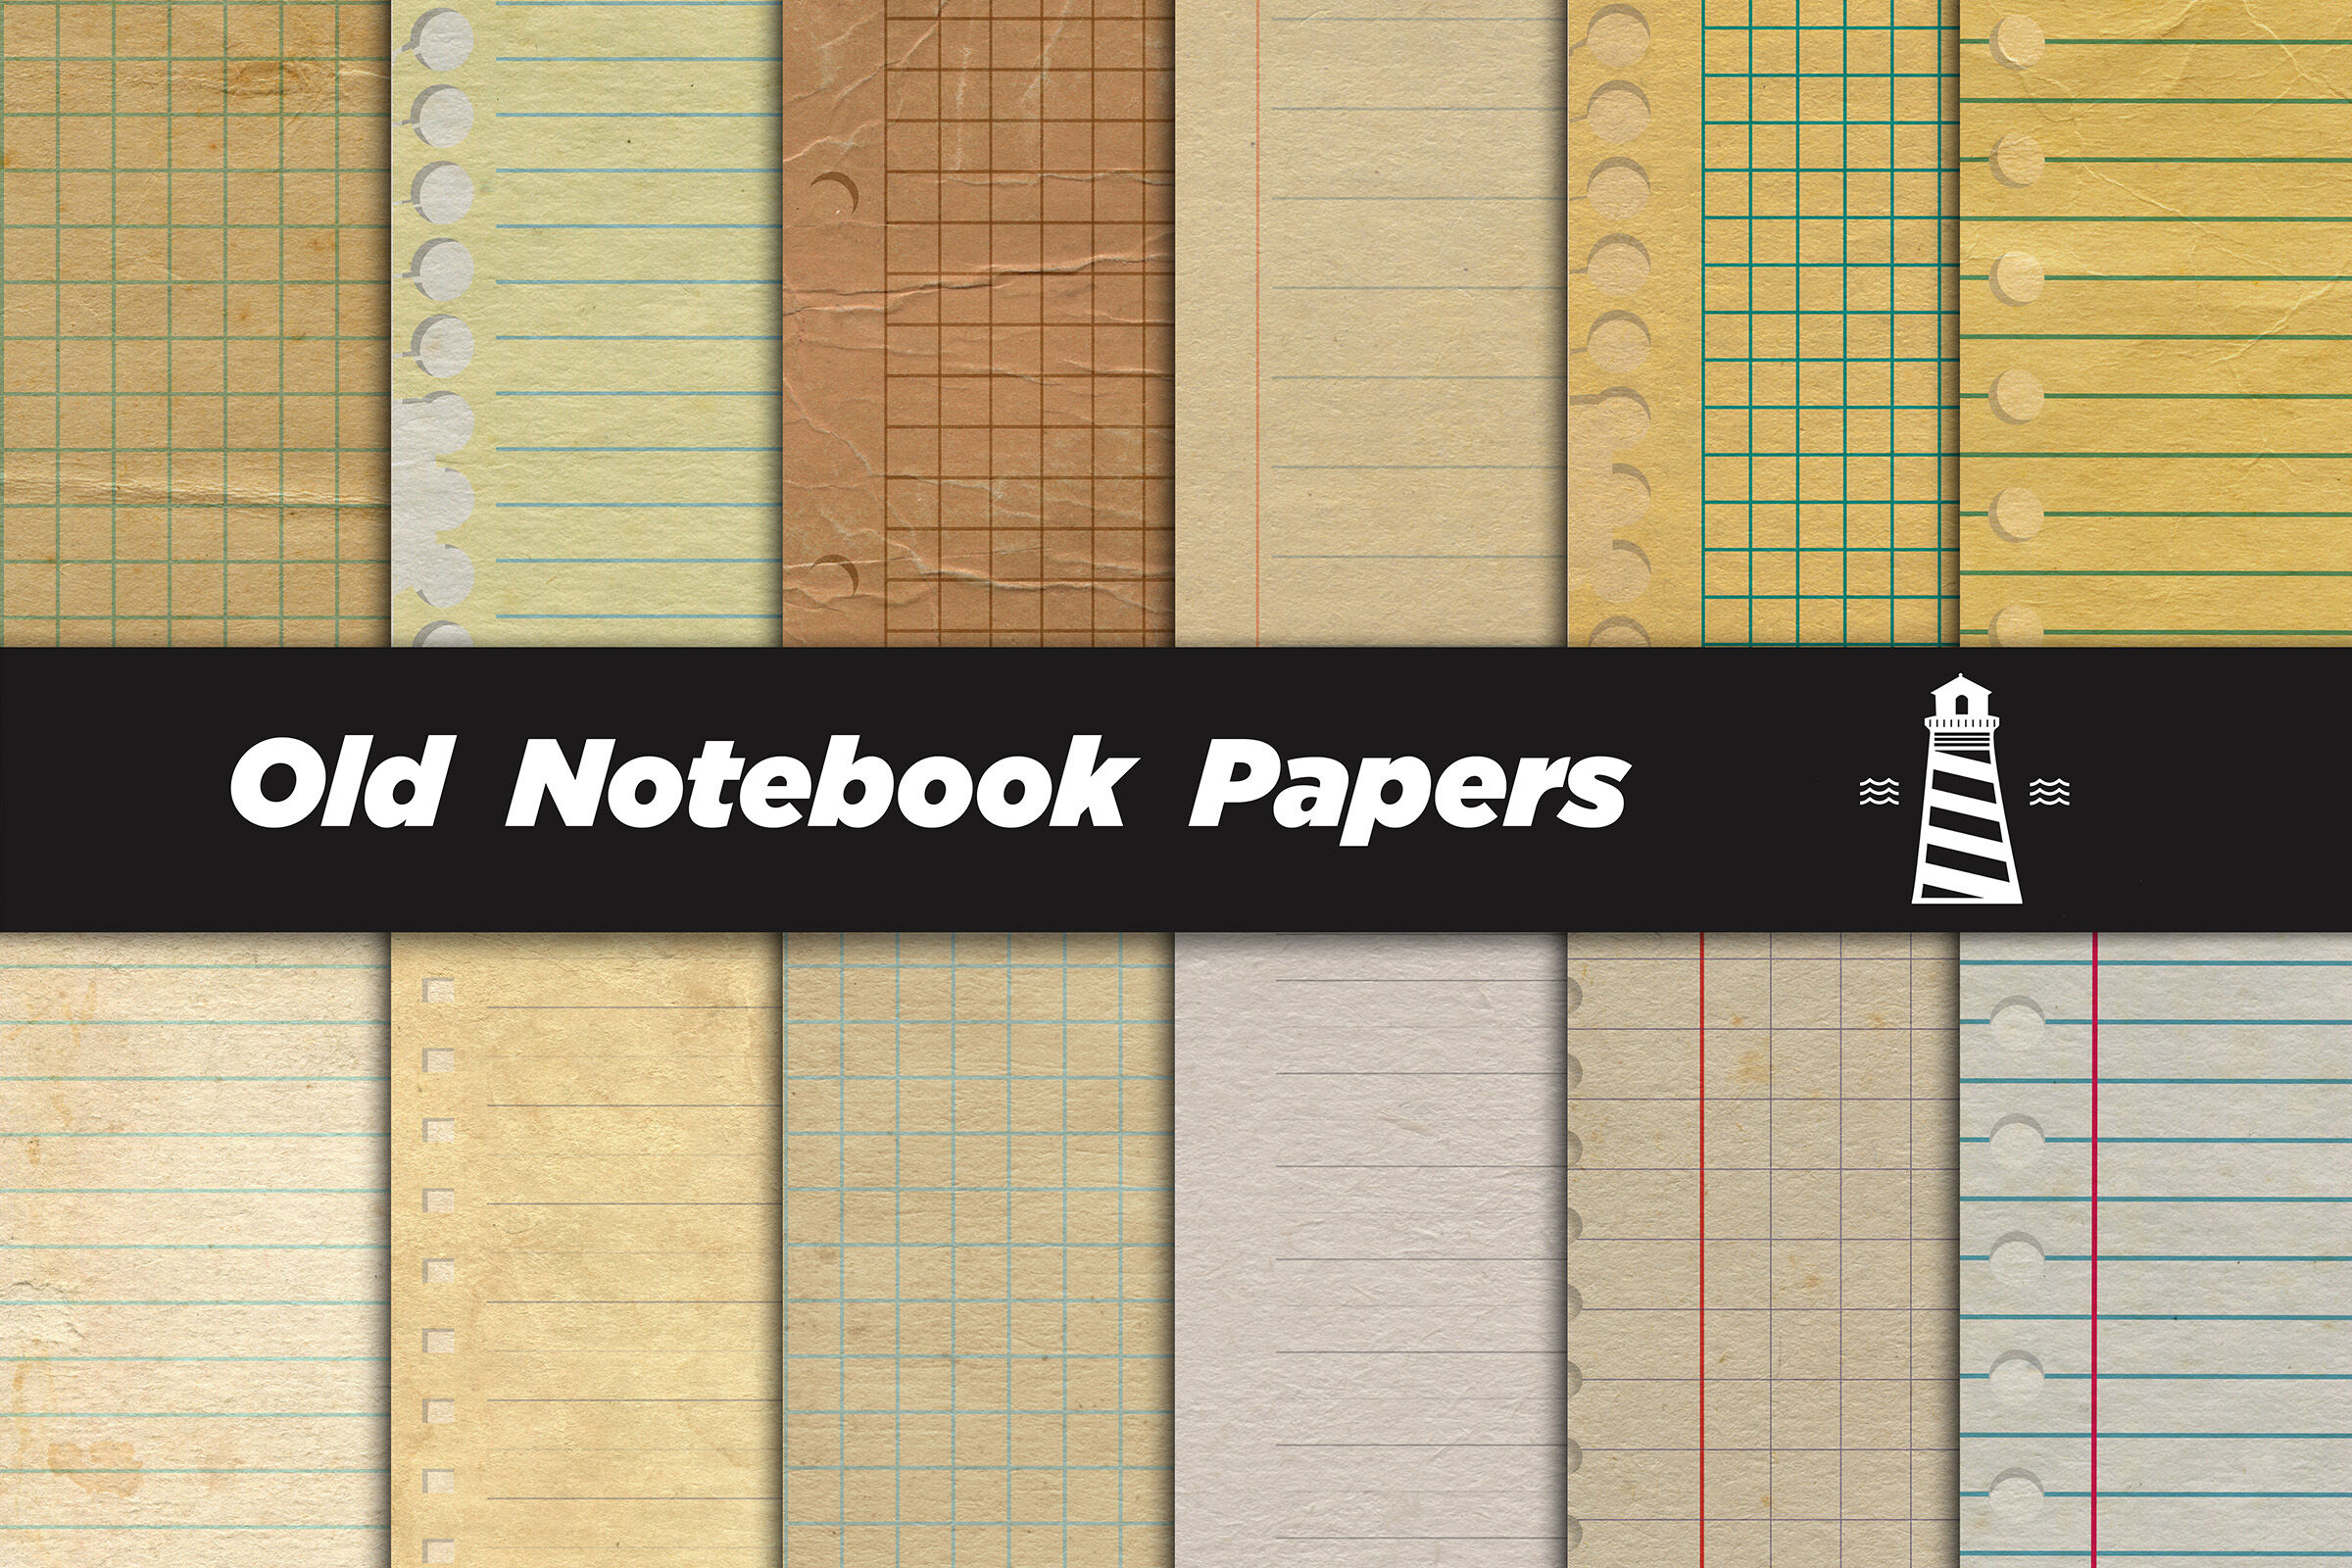 Vintage Notebook Digital Paper By North Sea Studio Thehungryjpeg Com